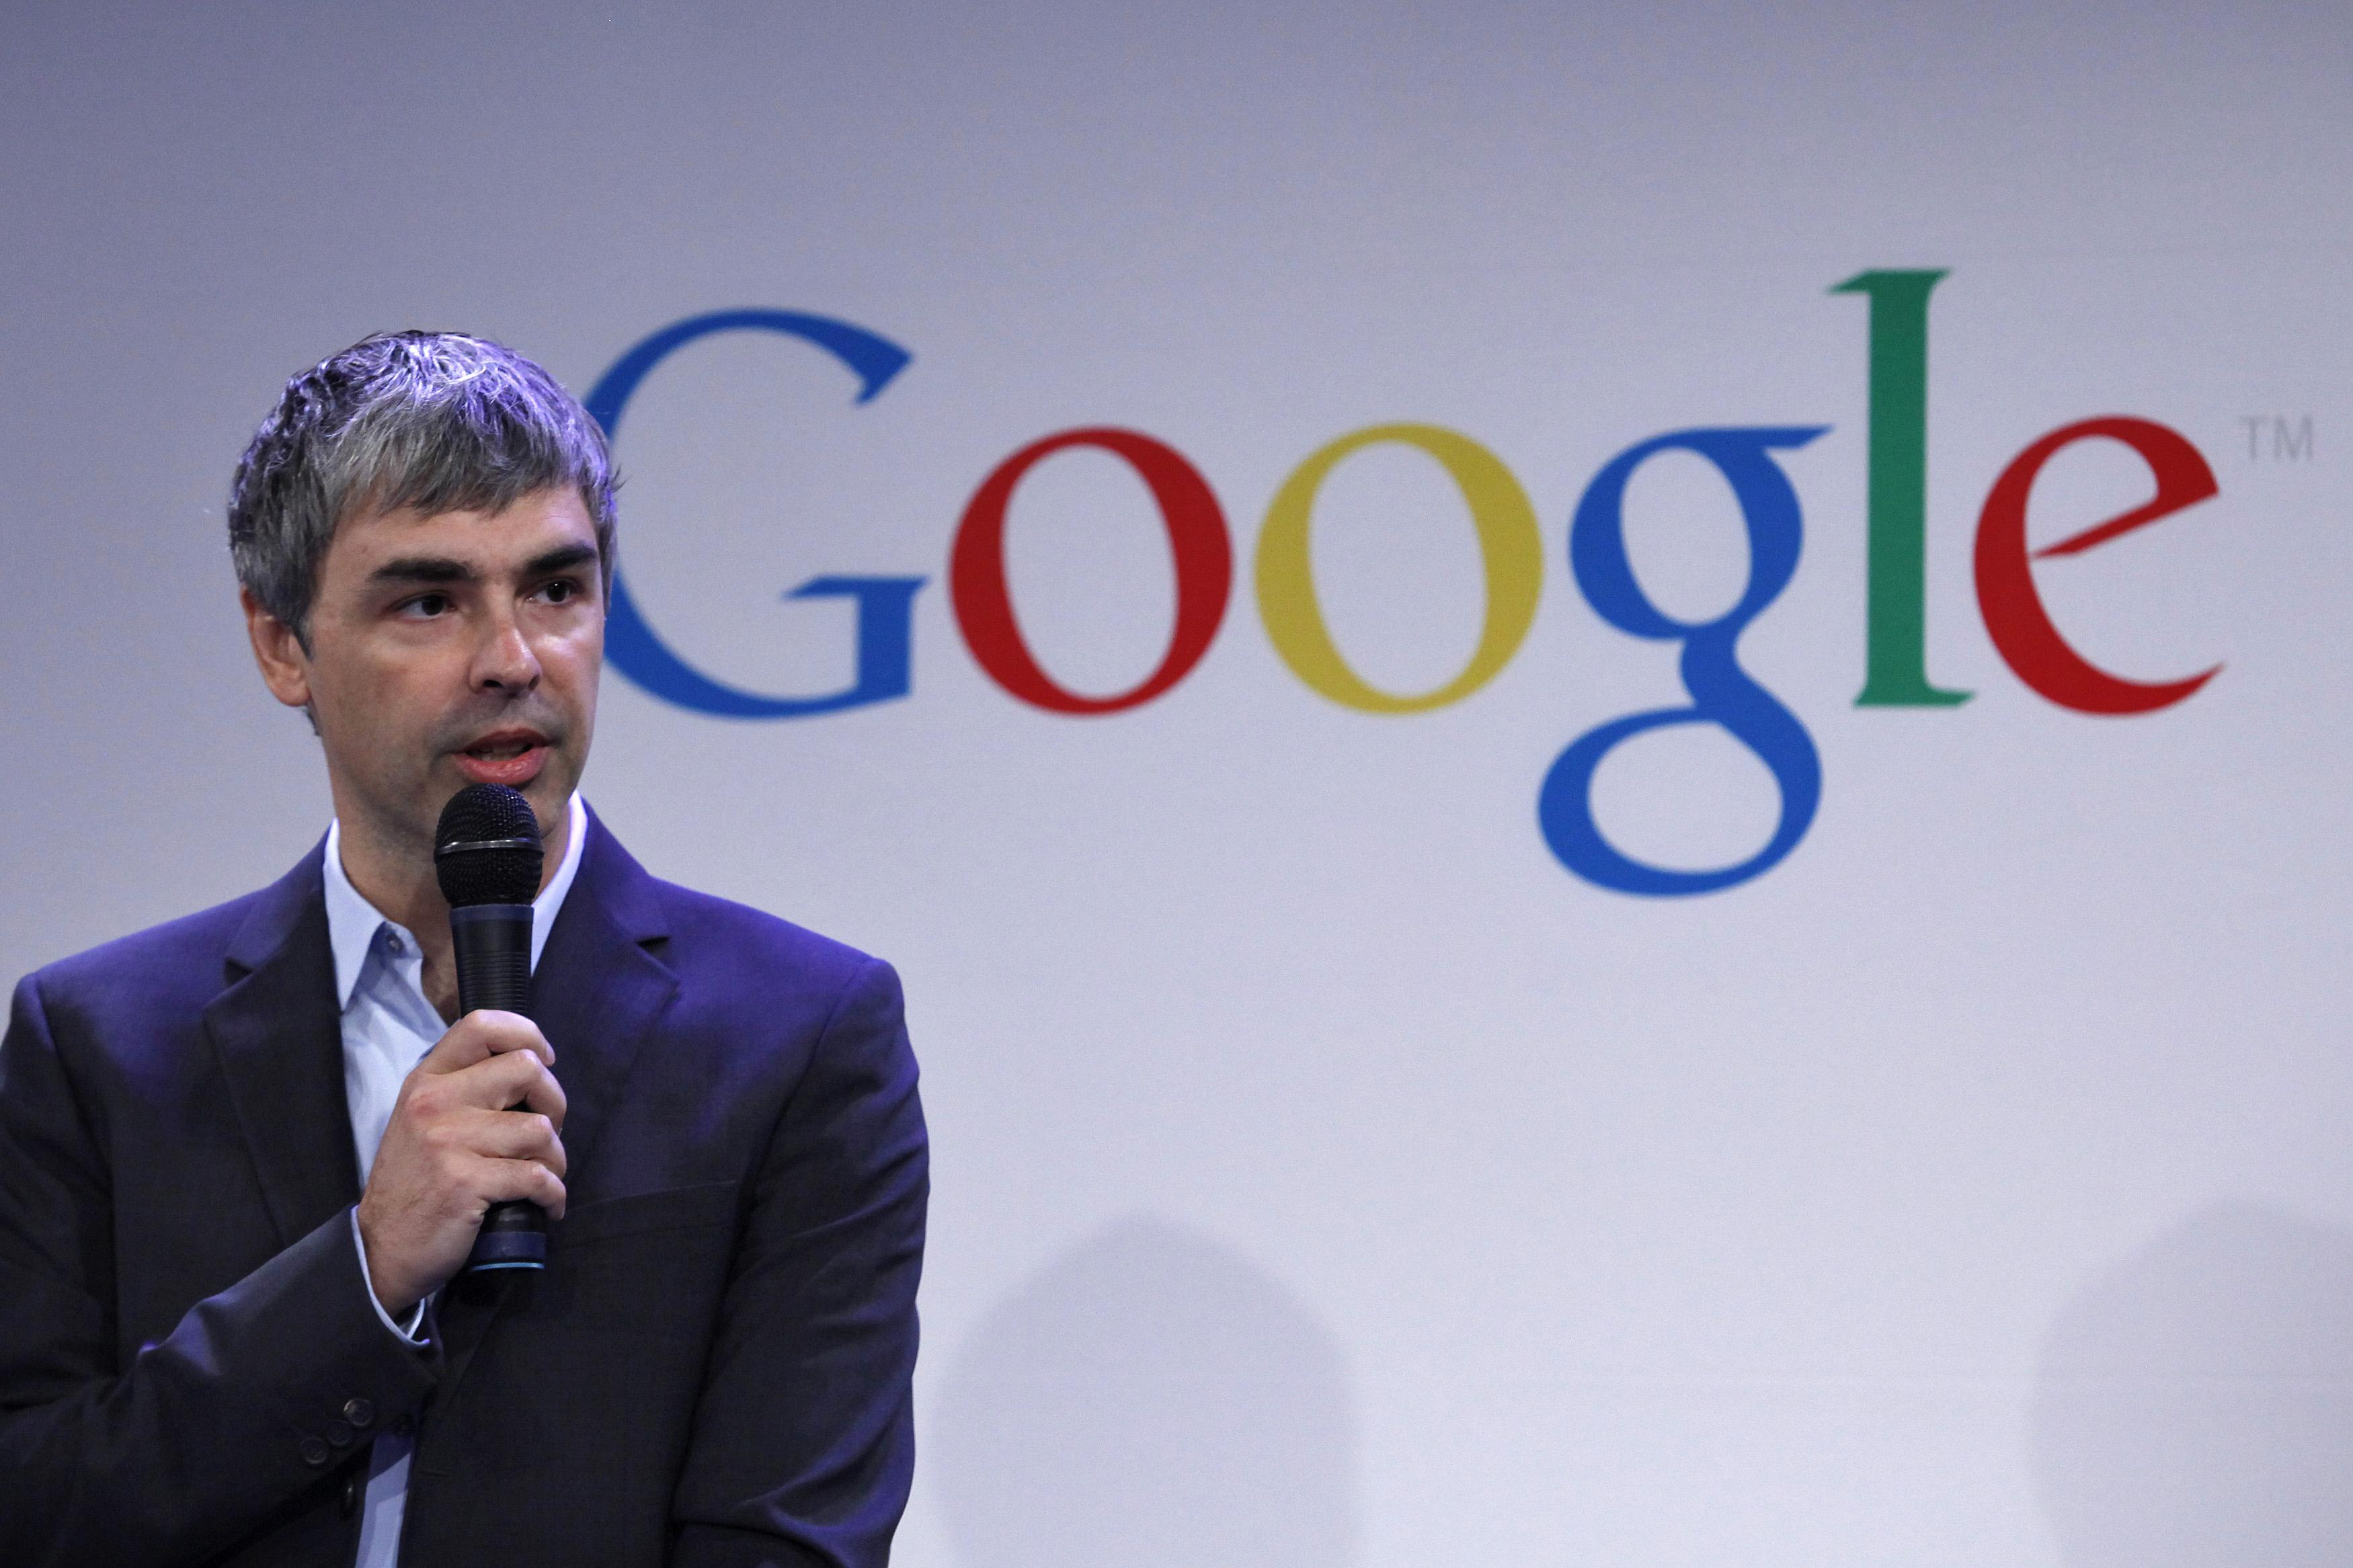 Google's Larry Page Might Be Able To Make Flying Cars A Reality.